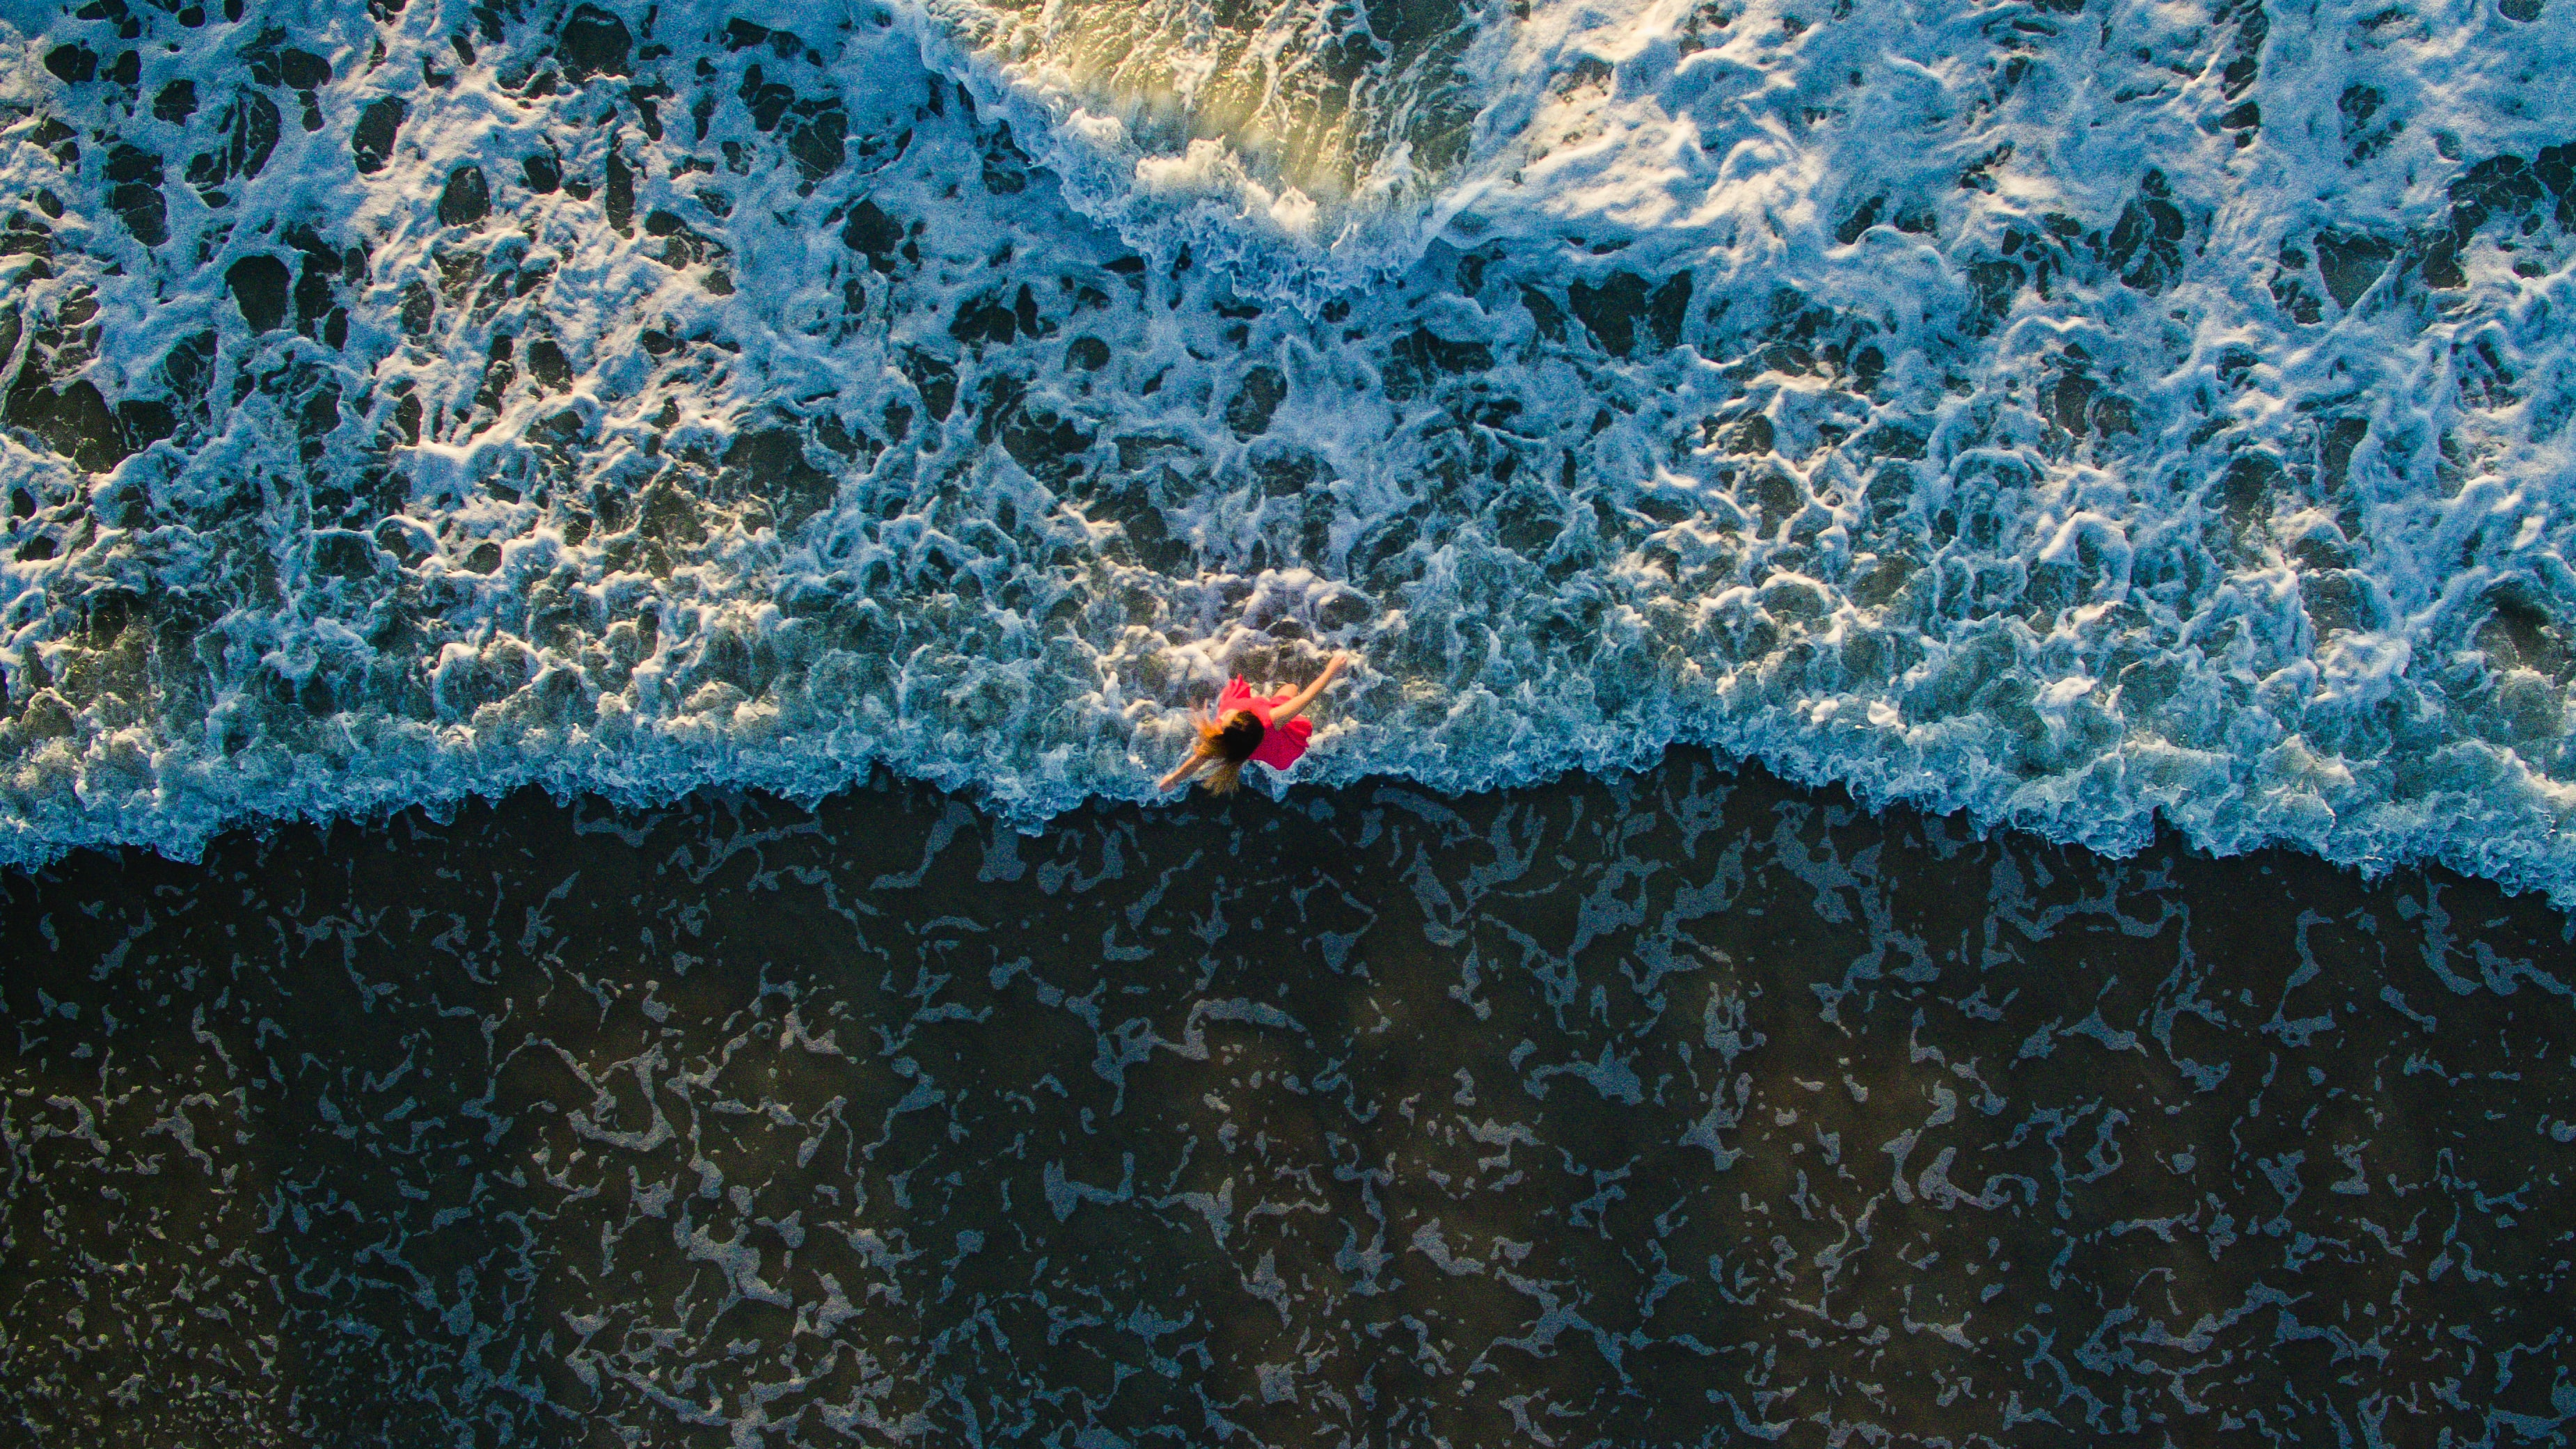 Top view of a woman in a red dress playing in the ocean waves of Jacksonville beach